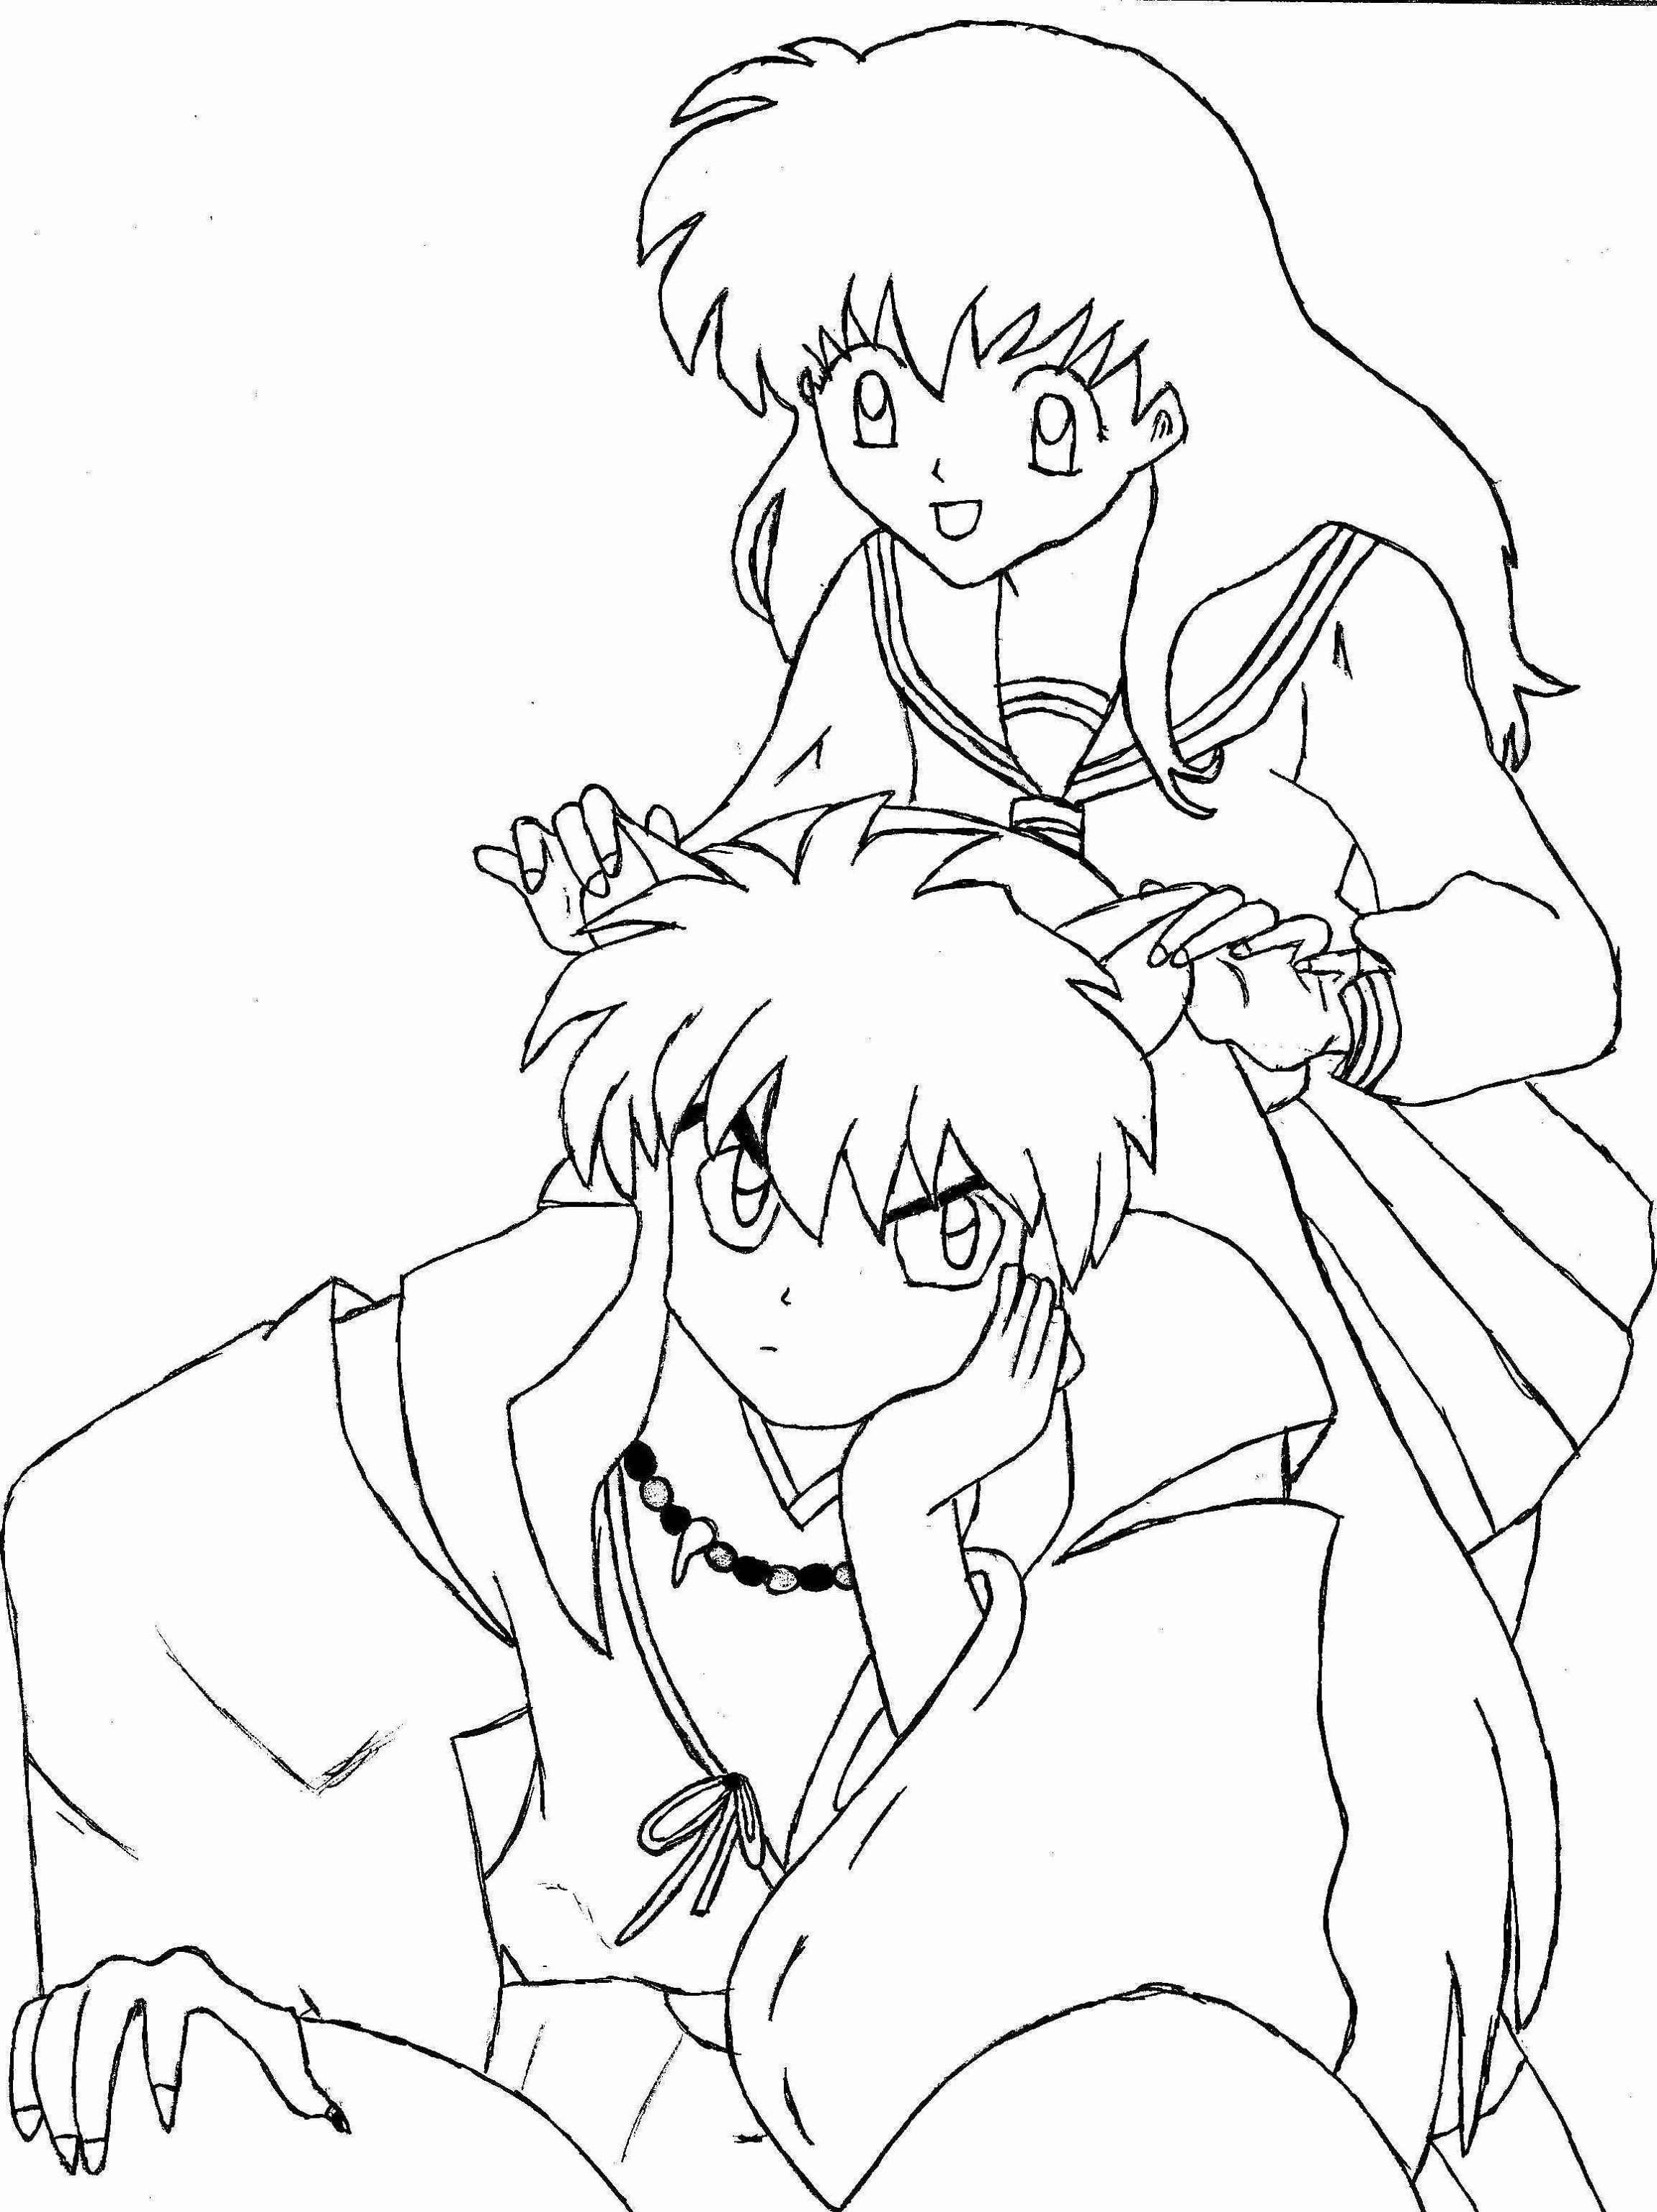 coloring inuyasha printable inuyasha coloring pages for kids cool2bkids inuyasha coloring